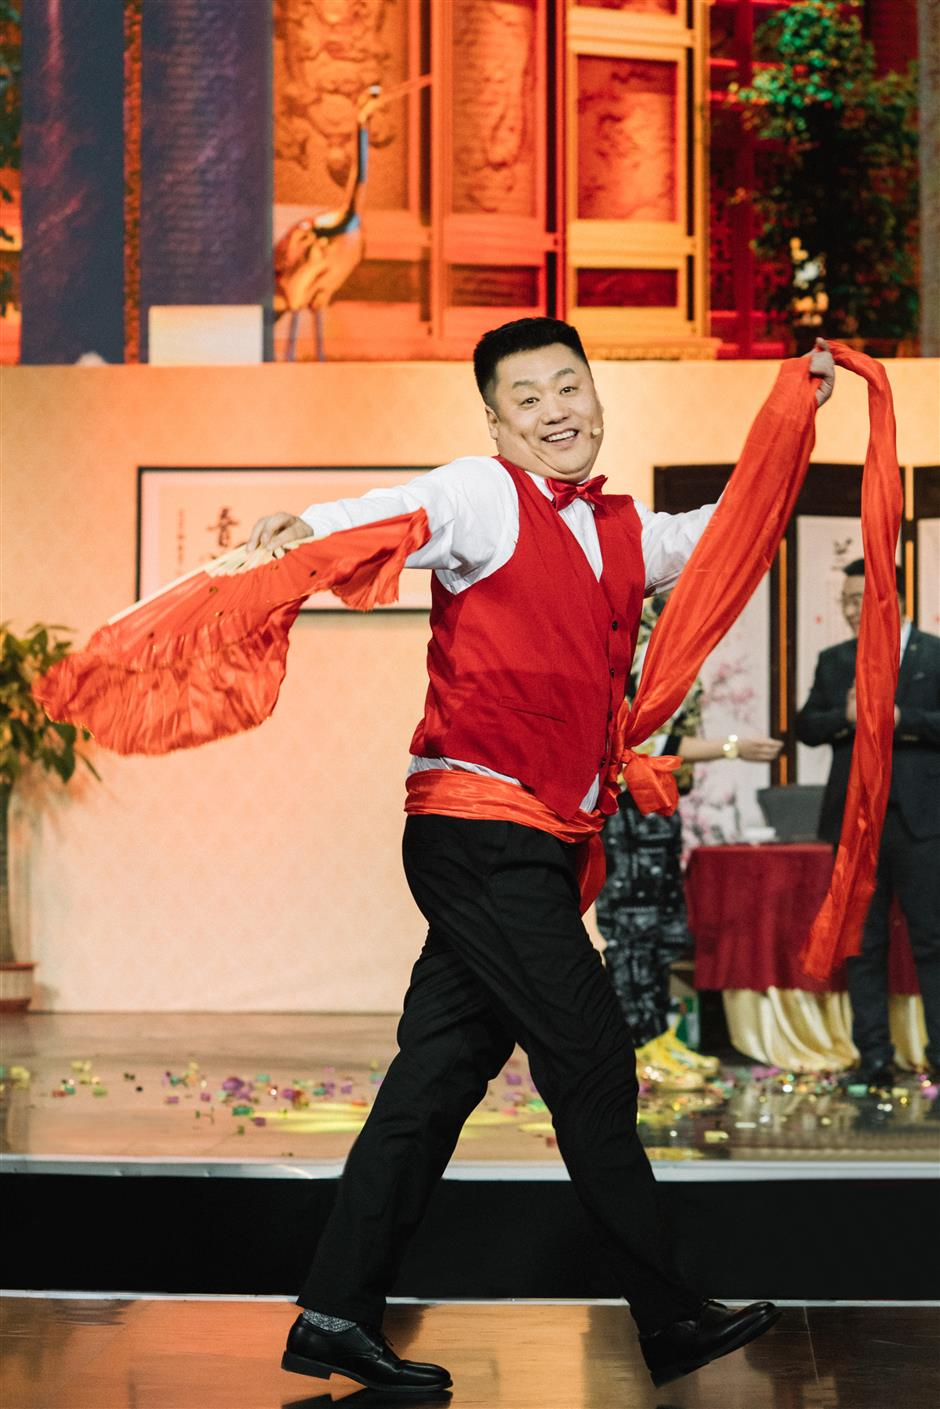 Variety program highlights roles of ordinary people